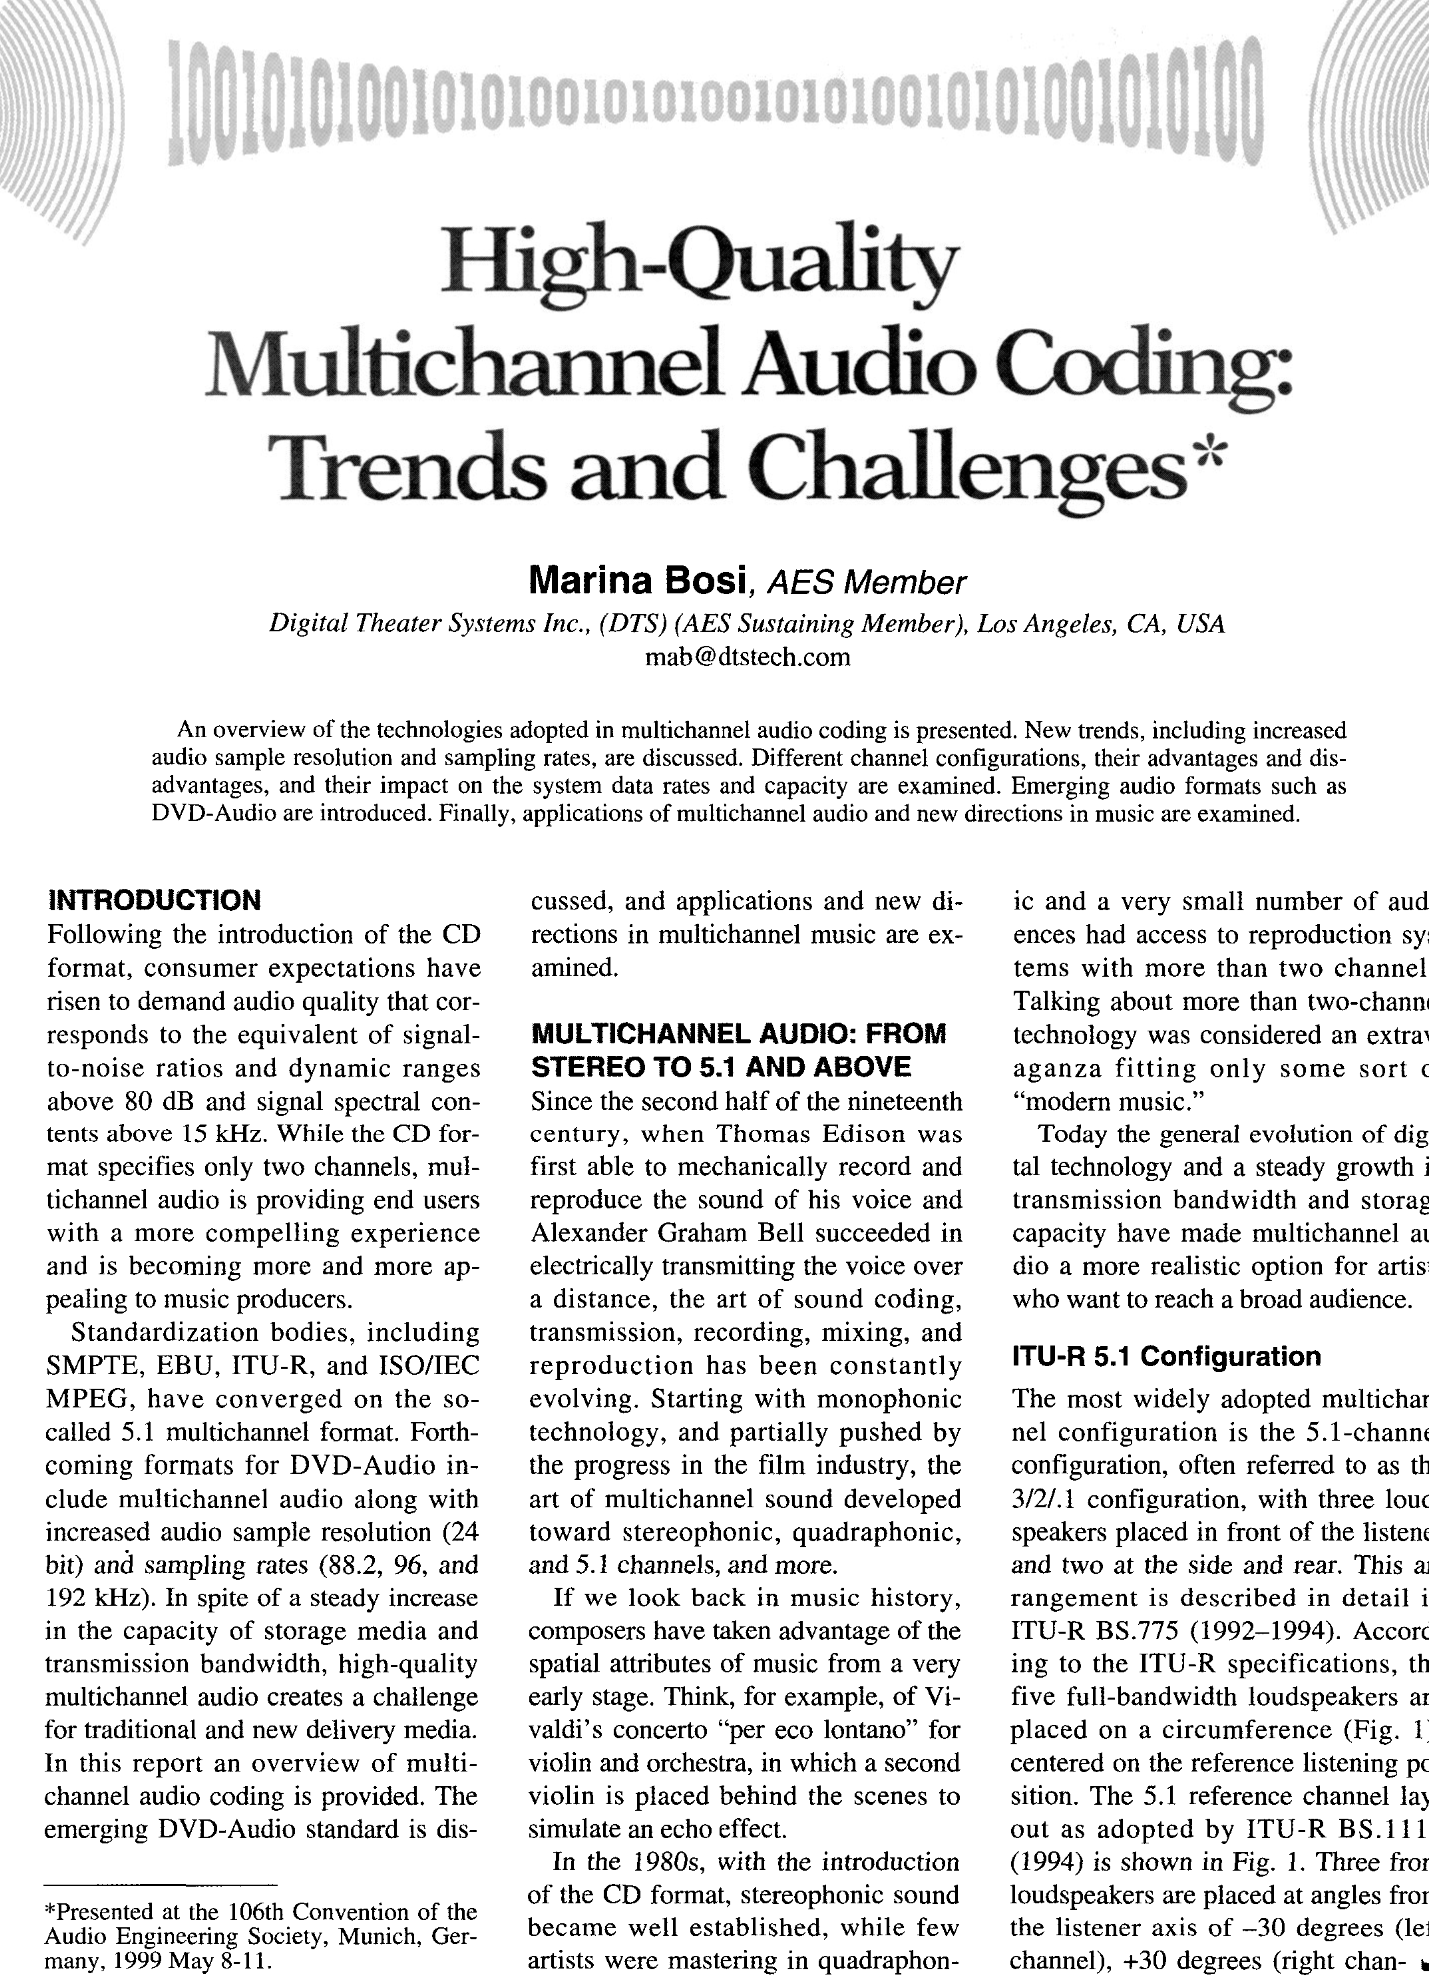 AES E-Library » High-Quality Multichannel Audio Coding: Trends and